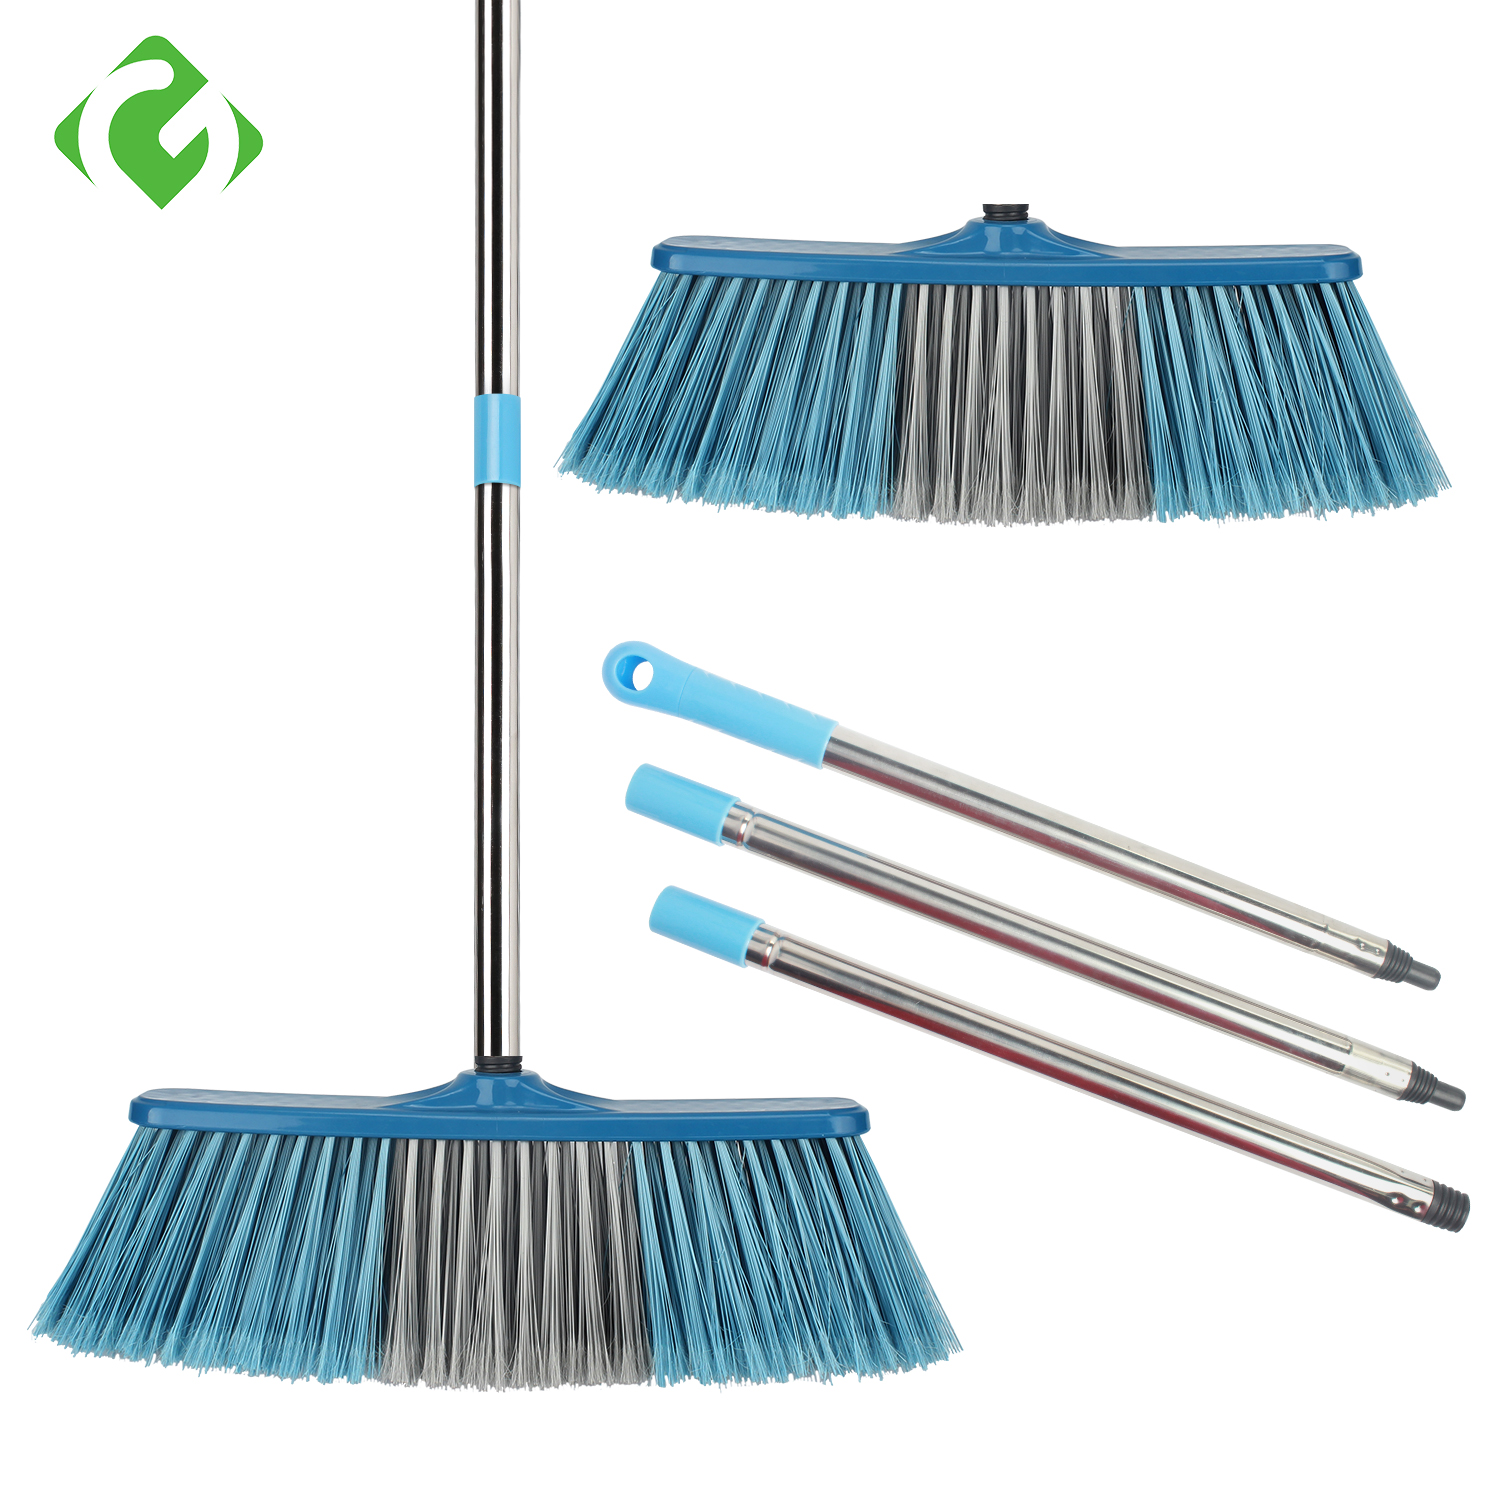 GUANYAO Big Broom Floor Cleaning Long Handle Bristle Grout Brooms Scrubber for Cleaning Outdoor Courtyard Warehouse  Tools